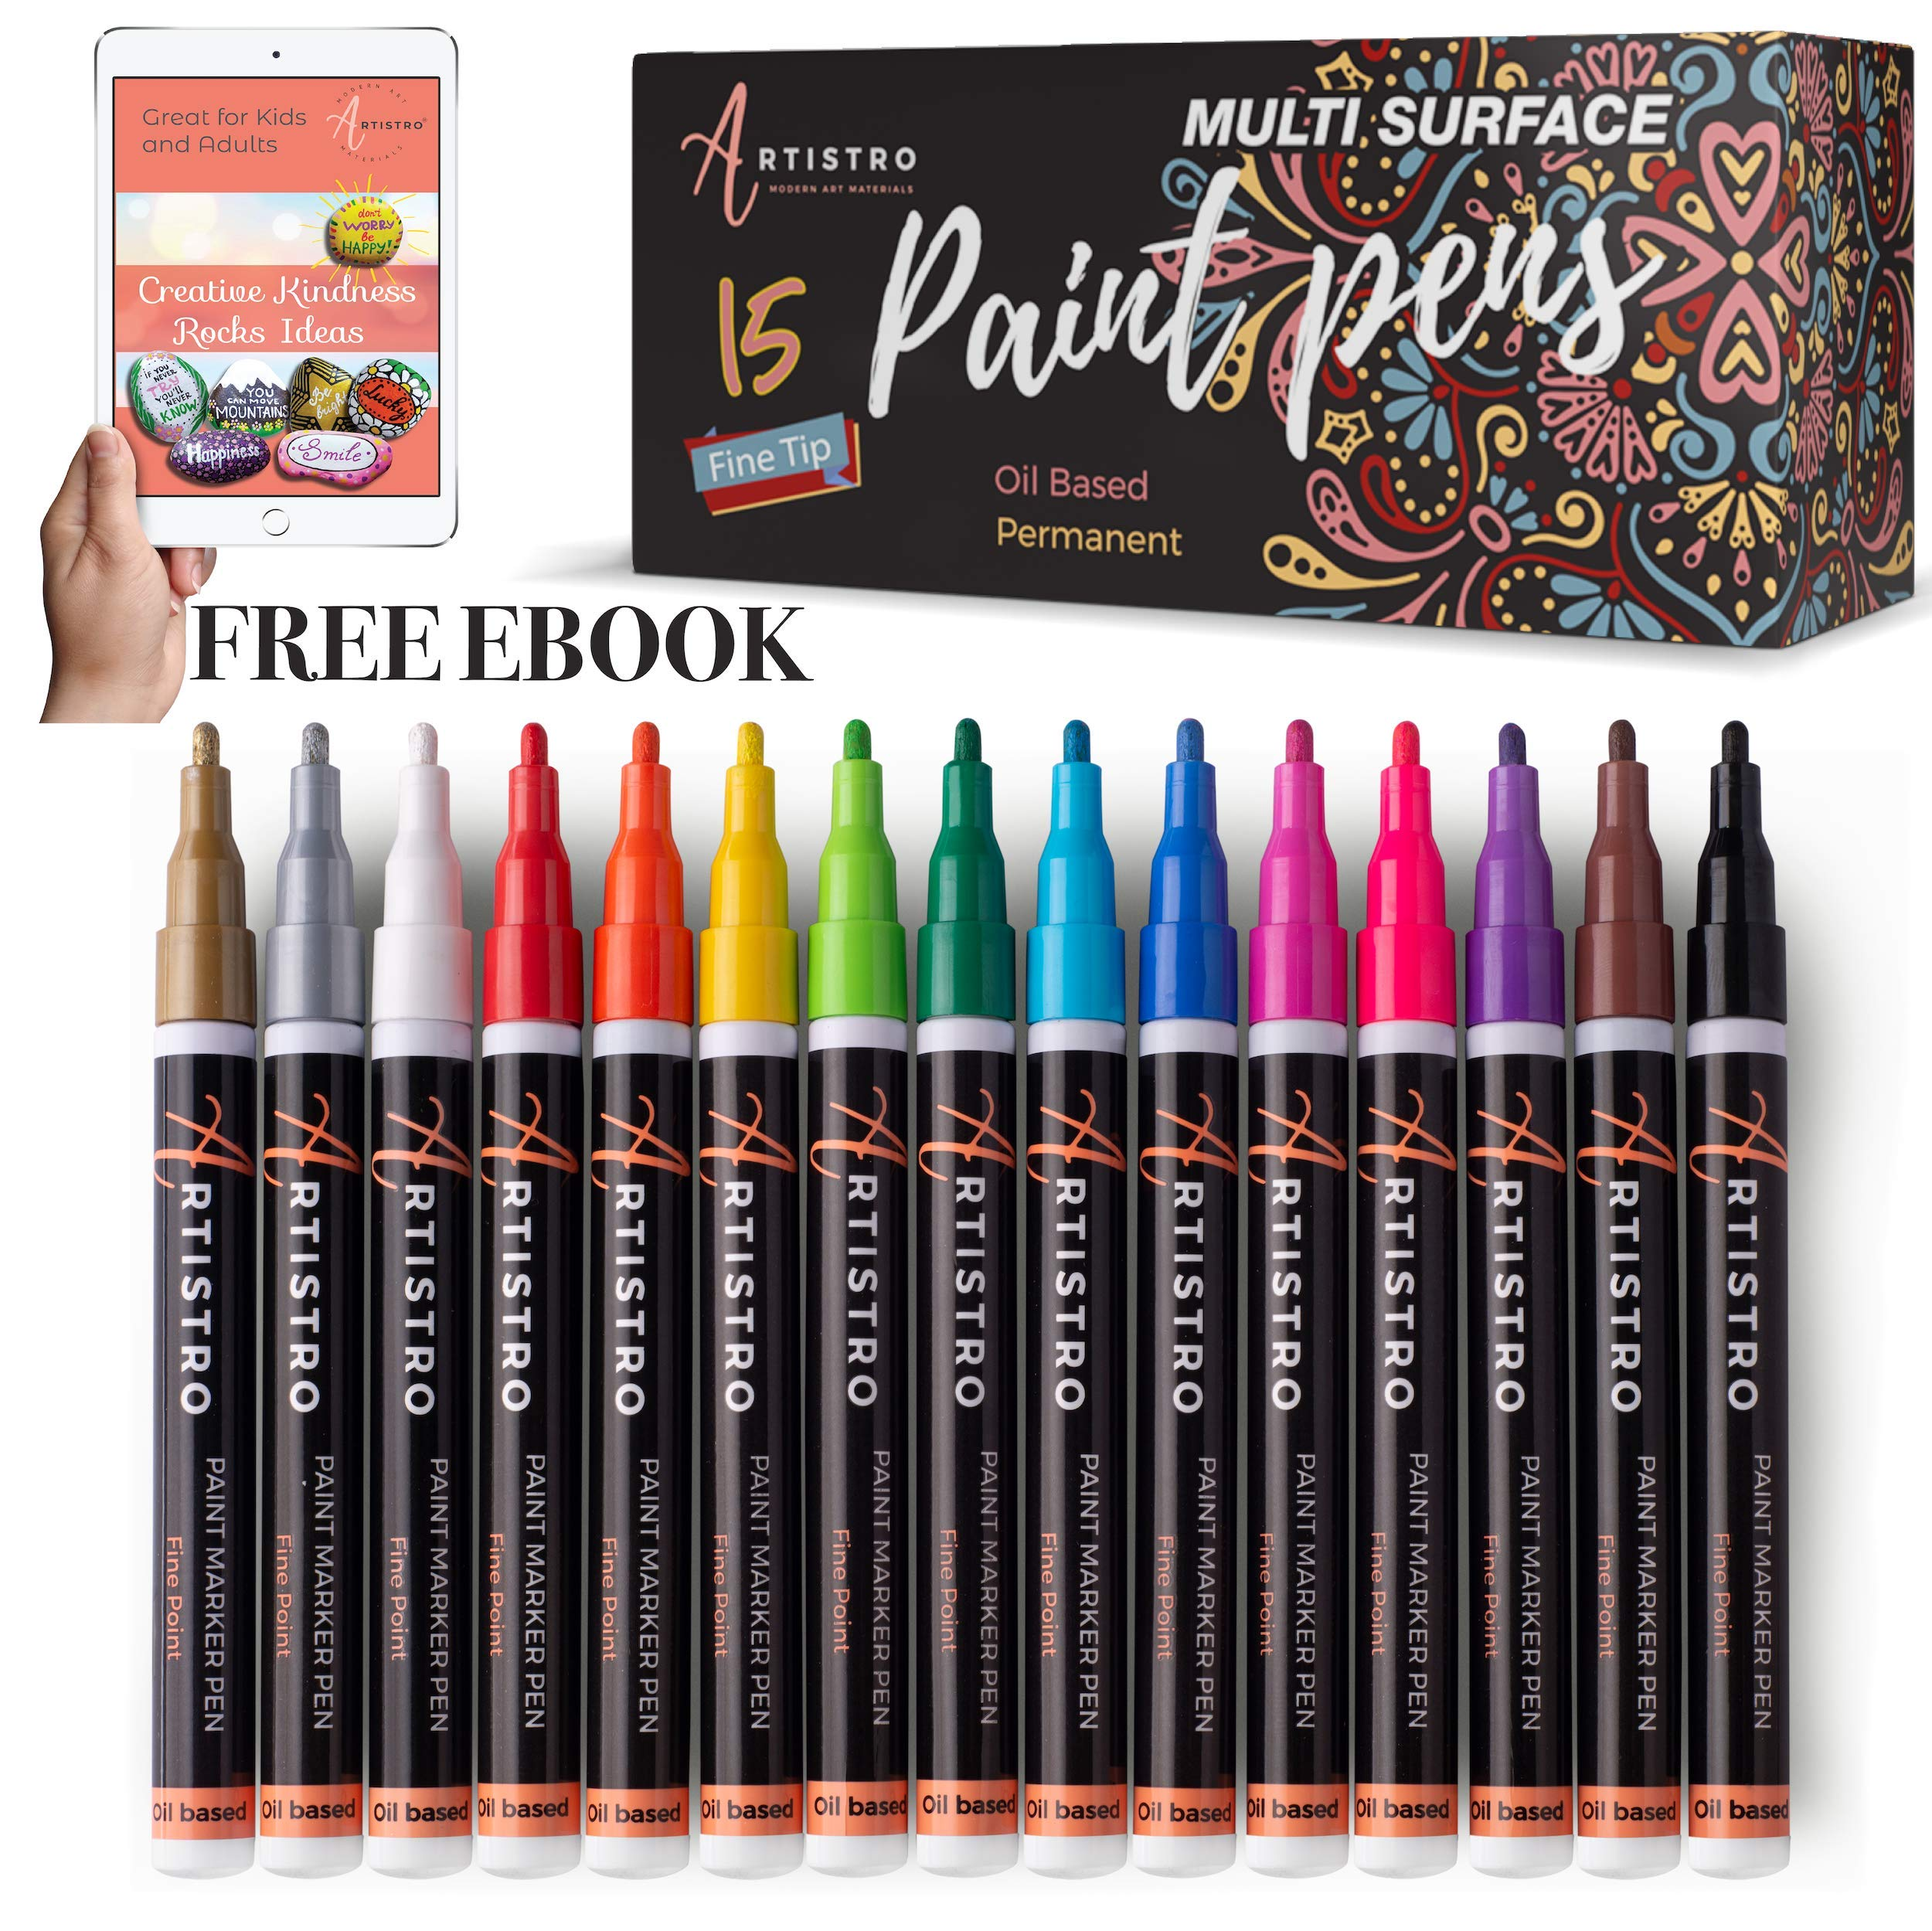 Paint Pens for Rock Painting, Stone, Metal, Ceramic, Porcelain, Glass, Wood, Fabric, Canvas. Set of 15 Permanent Oil Based Paint Markers Fine Tip by Artistro (Image #1)